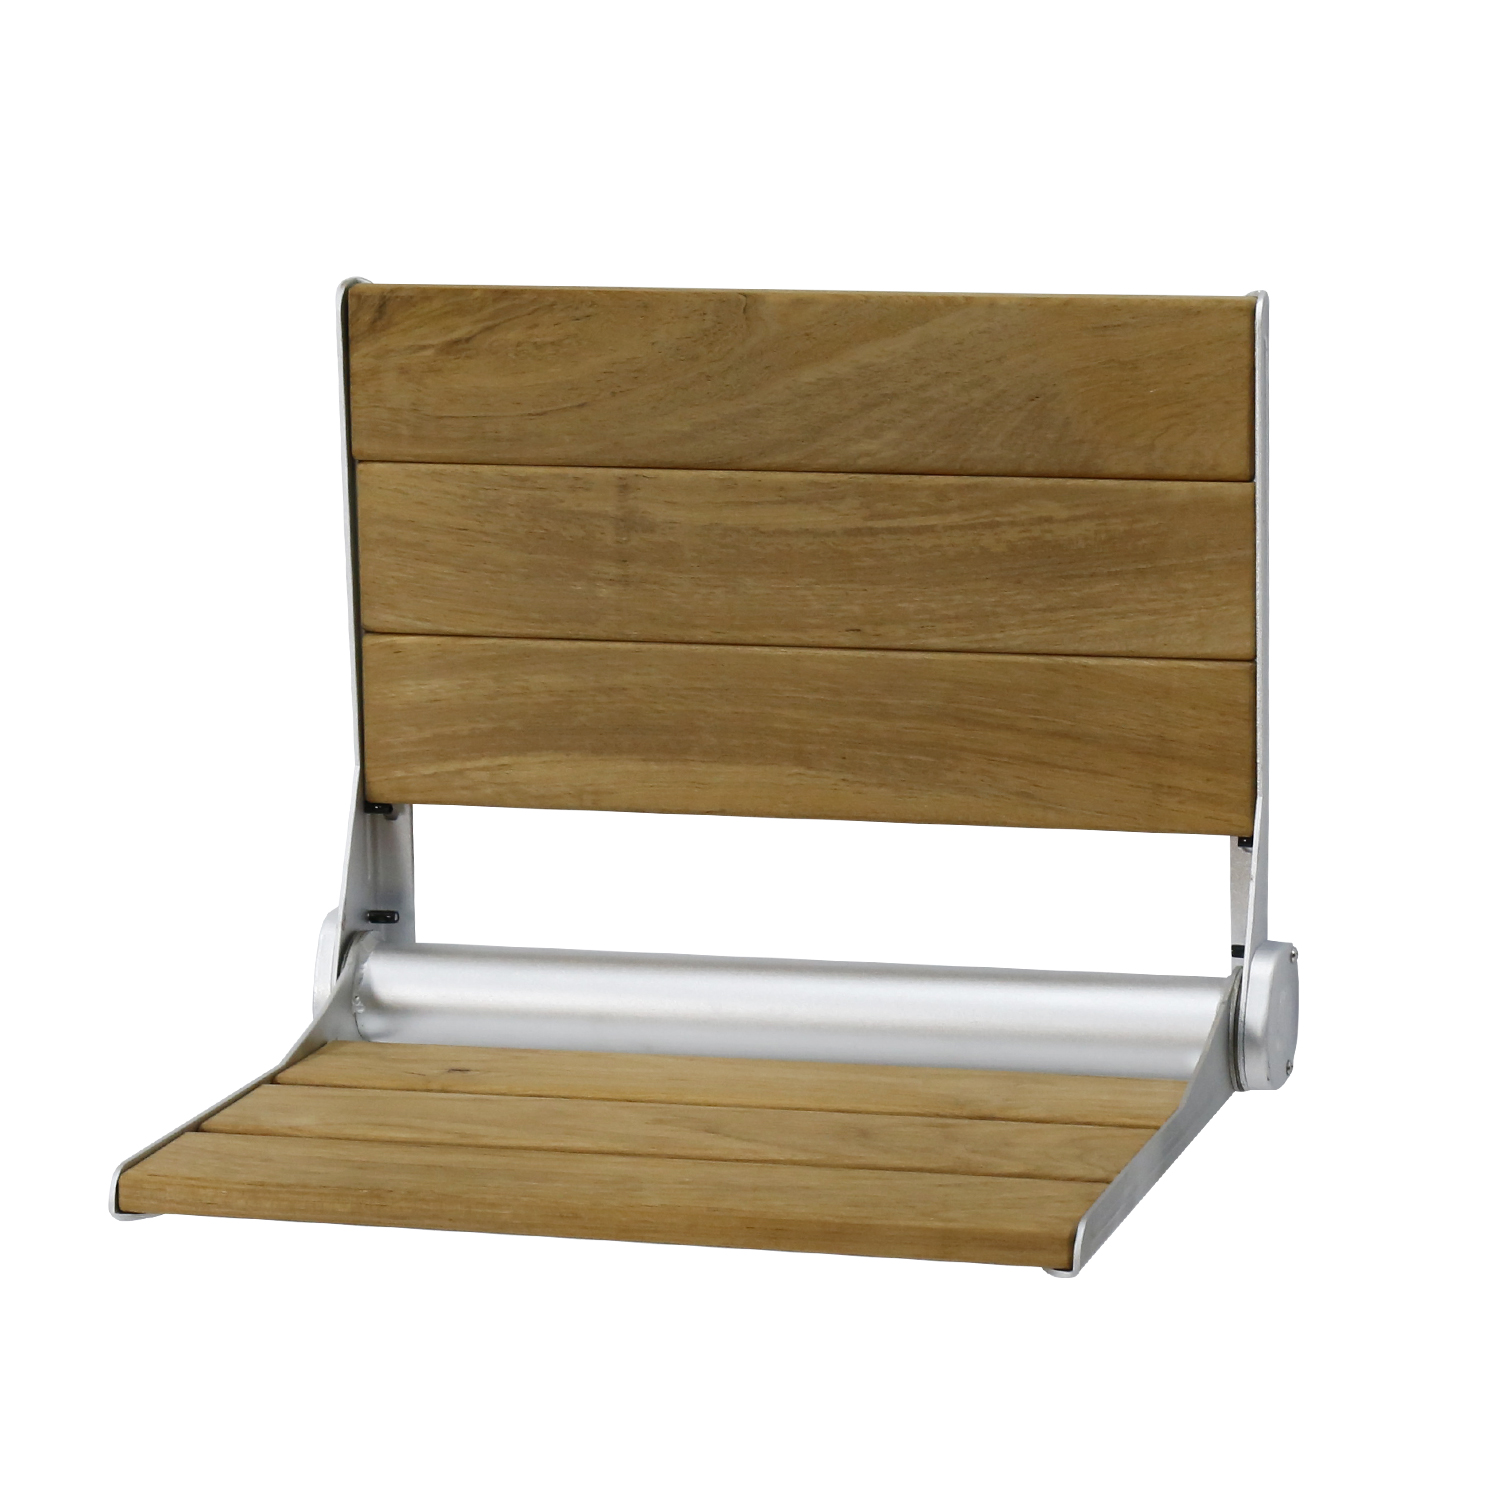 Wood Foldable Shower Seat Wall-Mounted Bath Bench Bathroom Medical ...